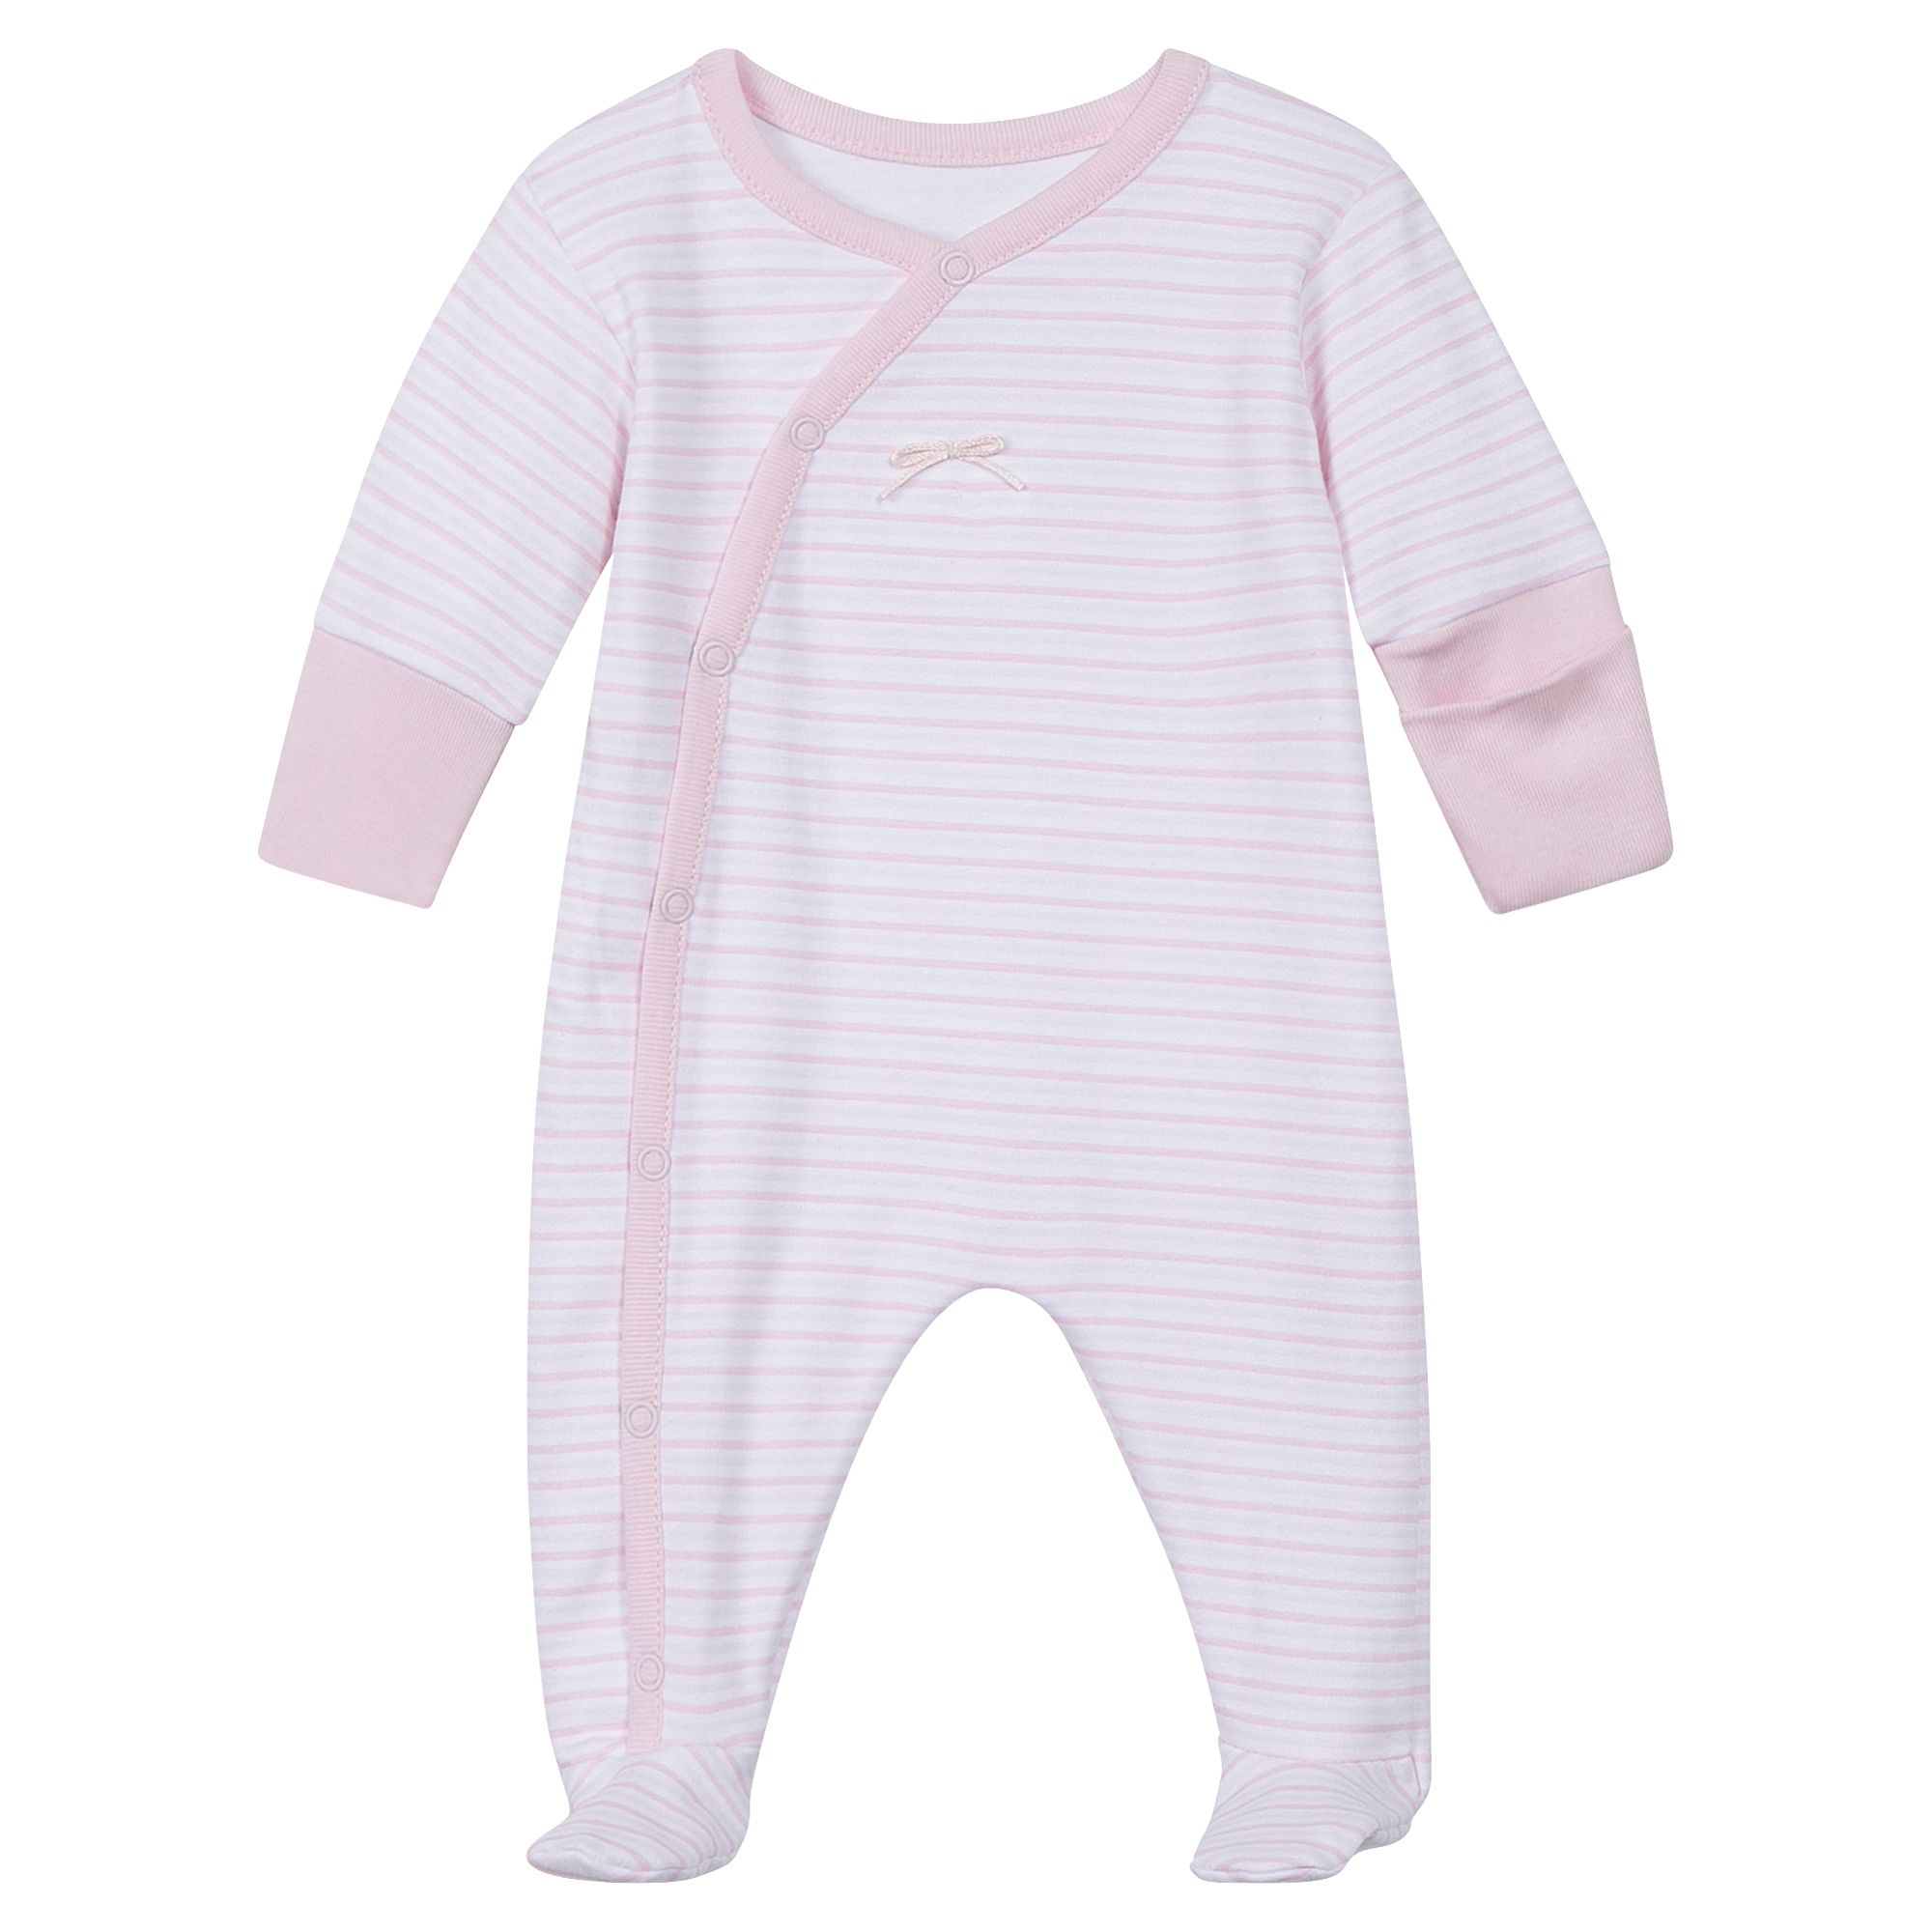 Absorba Absorba Baby Natural Cotton Sleepsuit, Pink